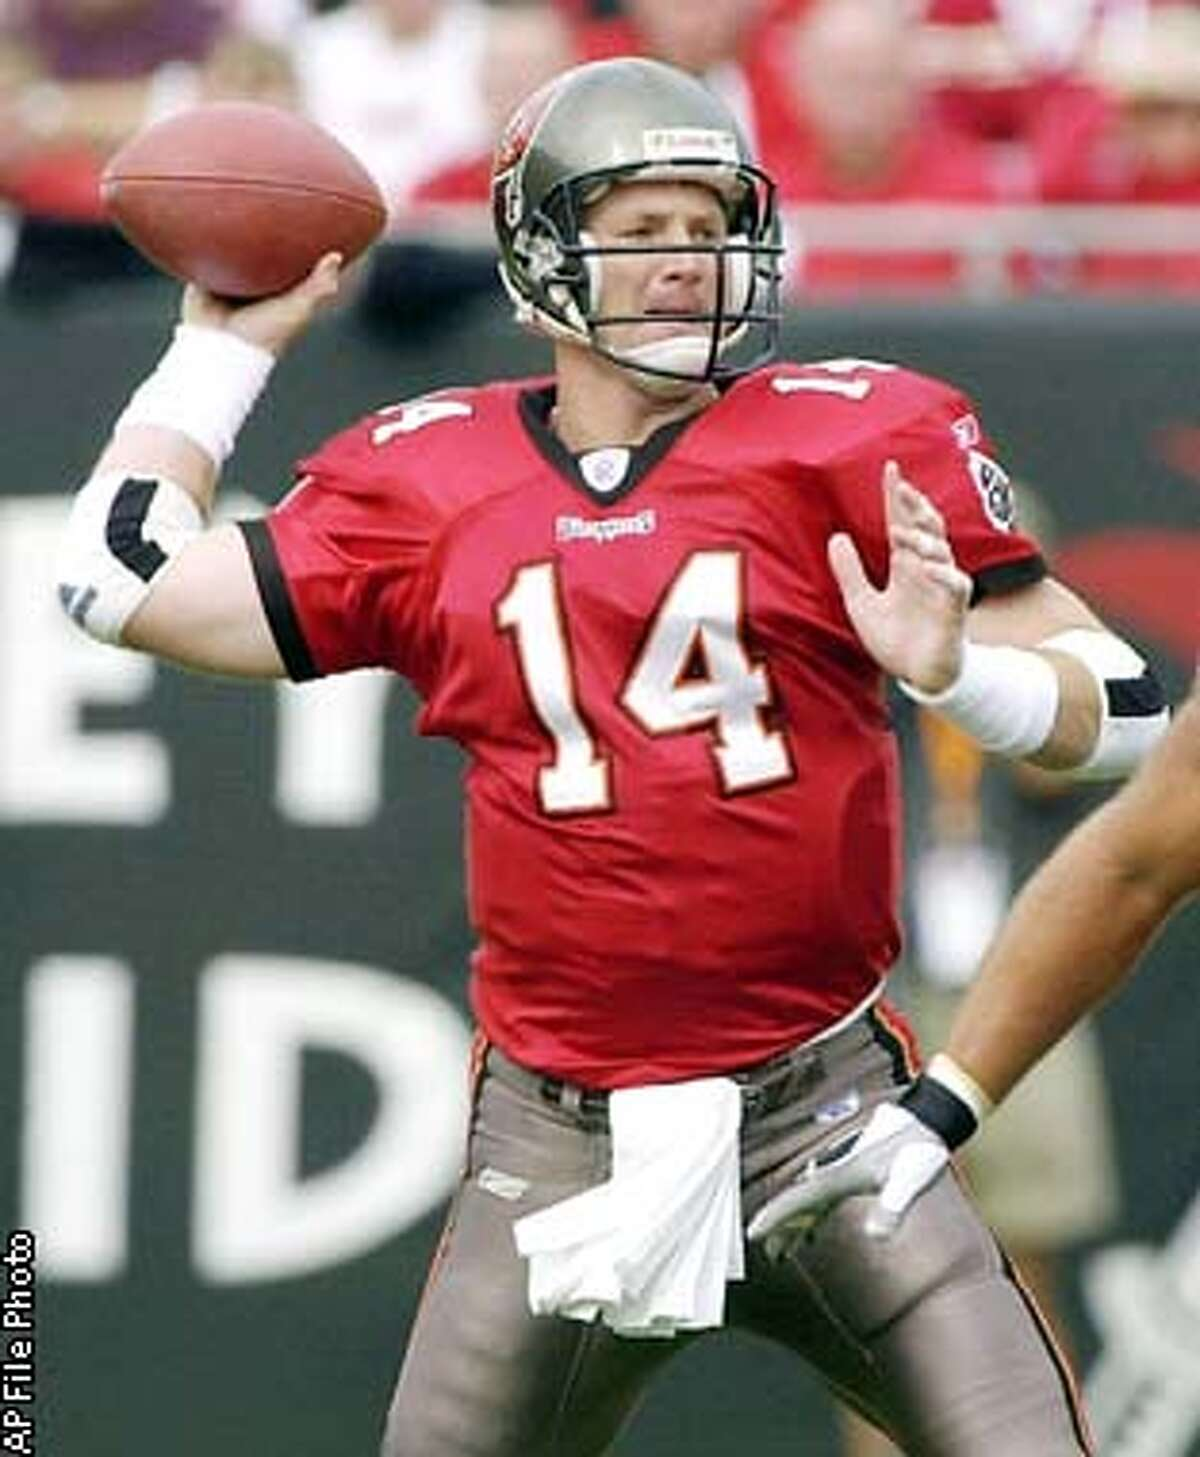 Tampa Bay Buccaneers quarterback Brad Johnson throws against the San Francisco 49ers' in the first quarter of the NFC Divisional playoff Sunday, Jan. 12, 2003, in Tampa, Fla. As well as they're playing and as confident as the Bucs are, they will have to buck some serious trends to reach the Super Bowl: 0-2 vs. the Eagles in the playoffs the past two years, 0-6 on the road in franchise postseason history, and 1-21 when the temperature is 40 or below.(AP Photo/Chris O'Meara)